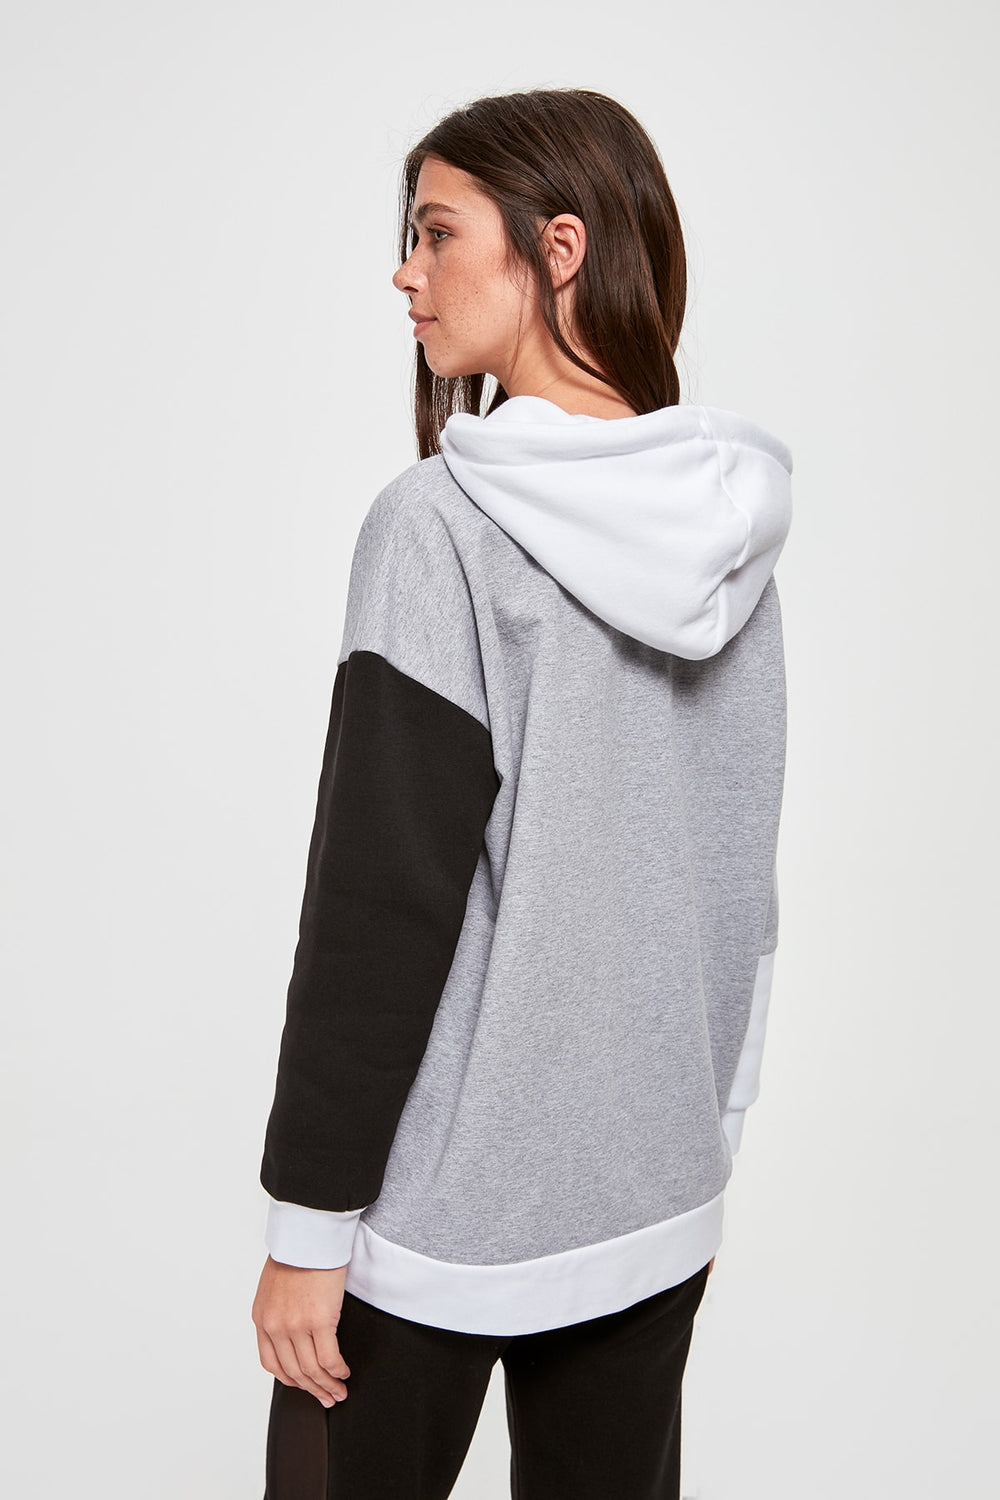 Miss Zut Miss Zut With Color Block Knitted Sweatshirt Miss Zut &CO